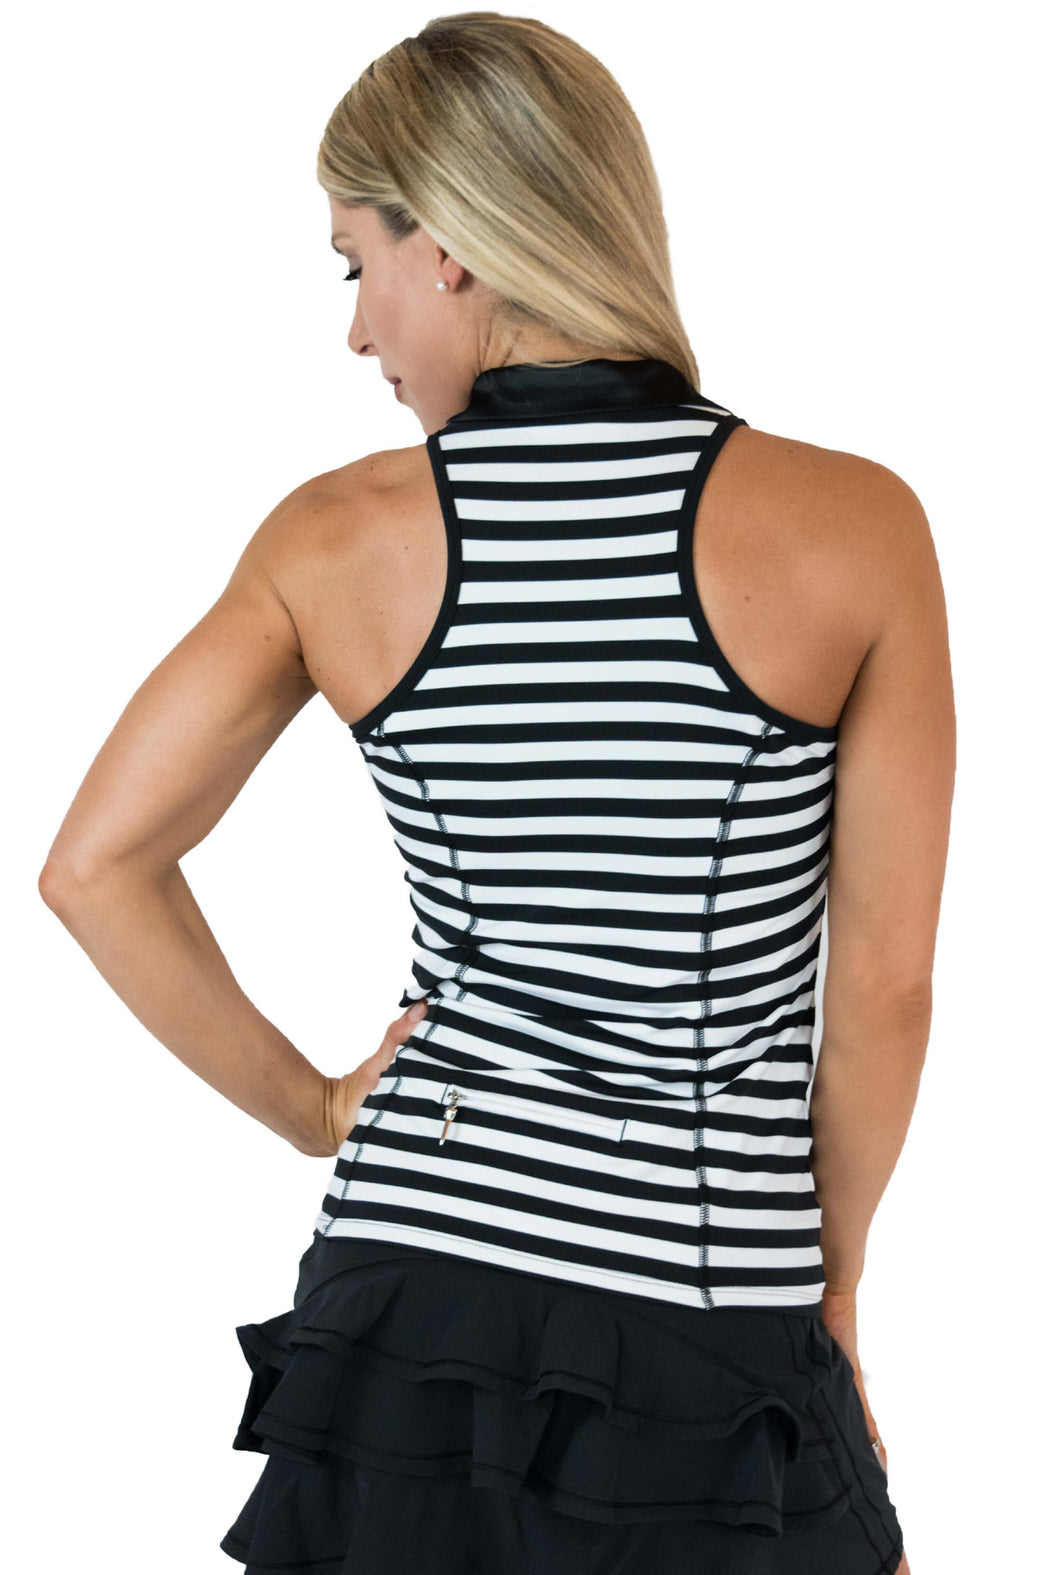 NEW! Racerback Golf Polo - Black & White Stripes